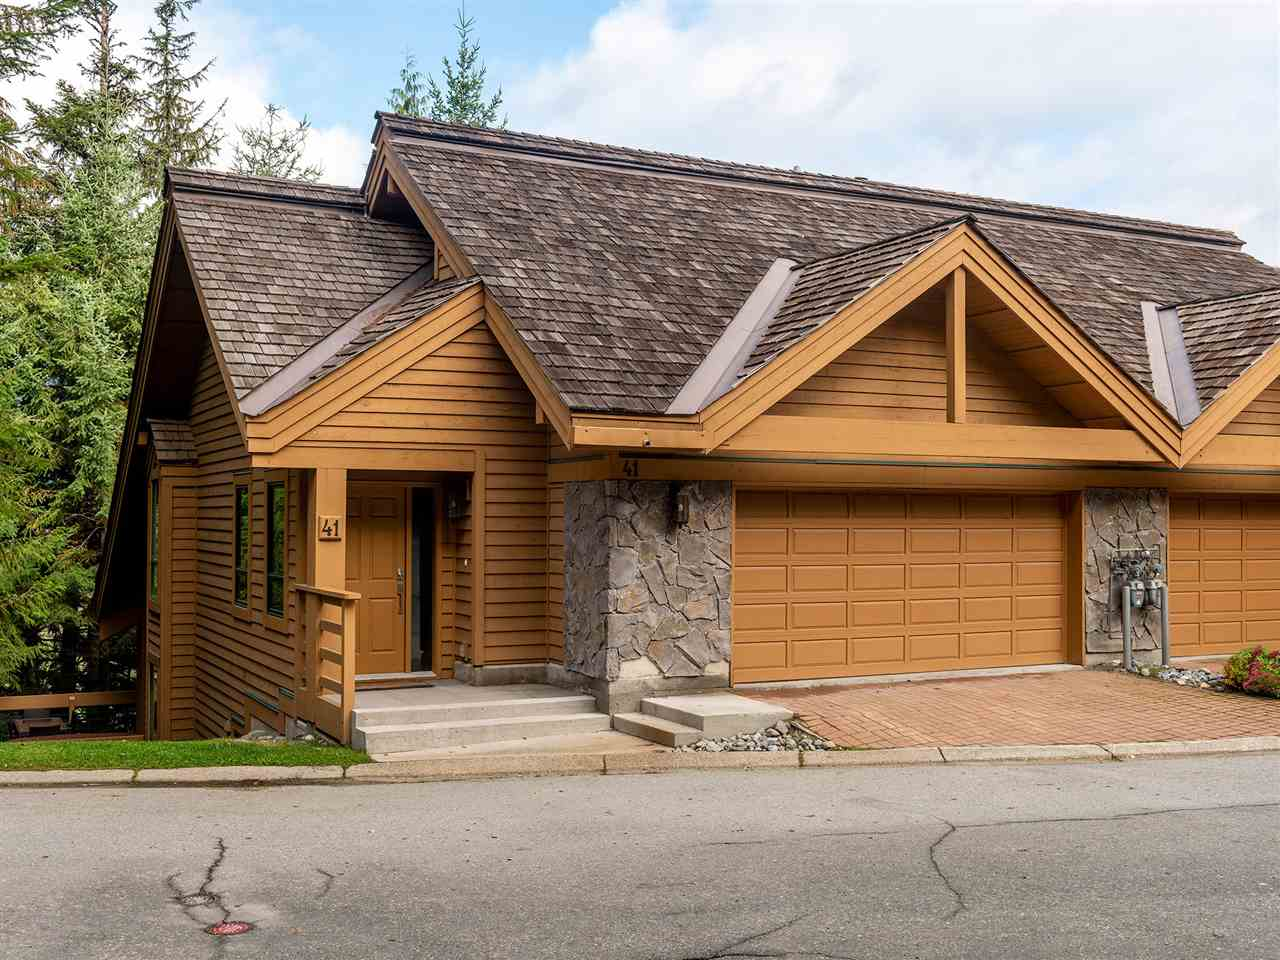 41 4150 TANTALUS DRIVE - Whistler Village Townhouse for sale, 5 Bedrooms (R2507499)